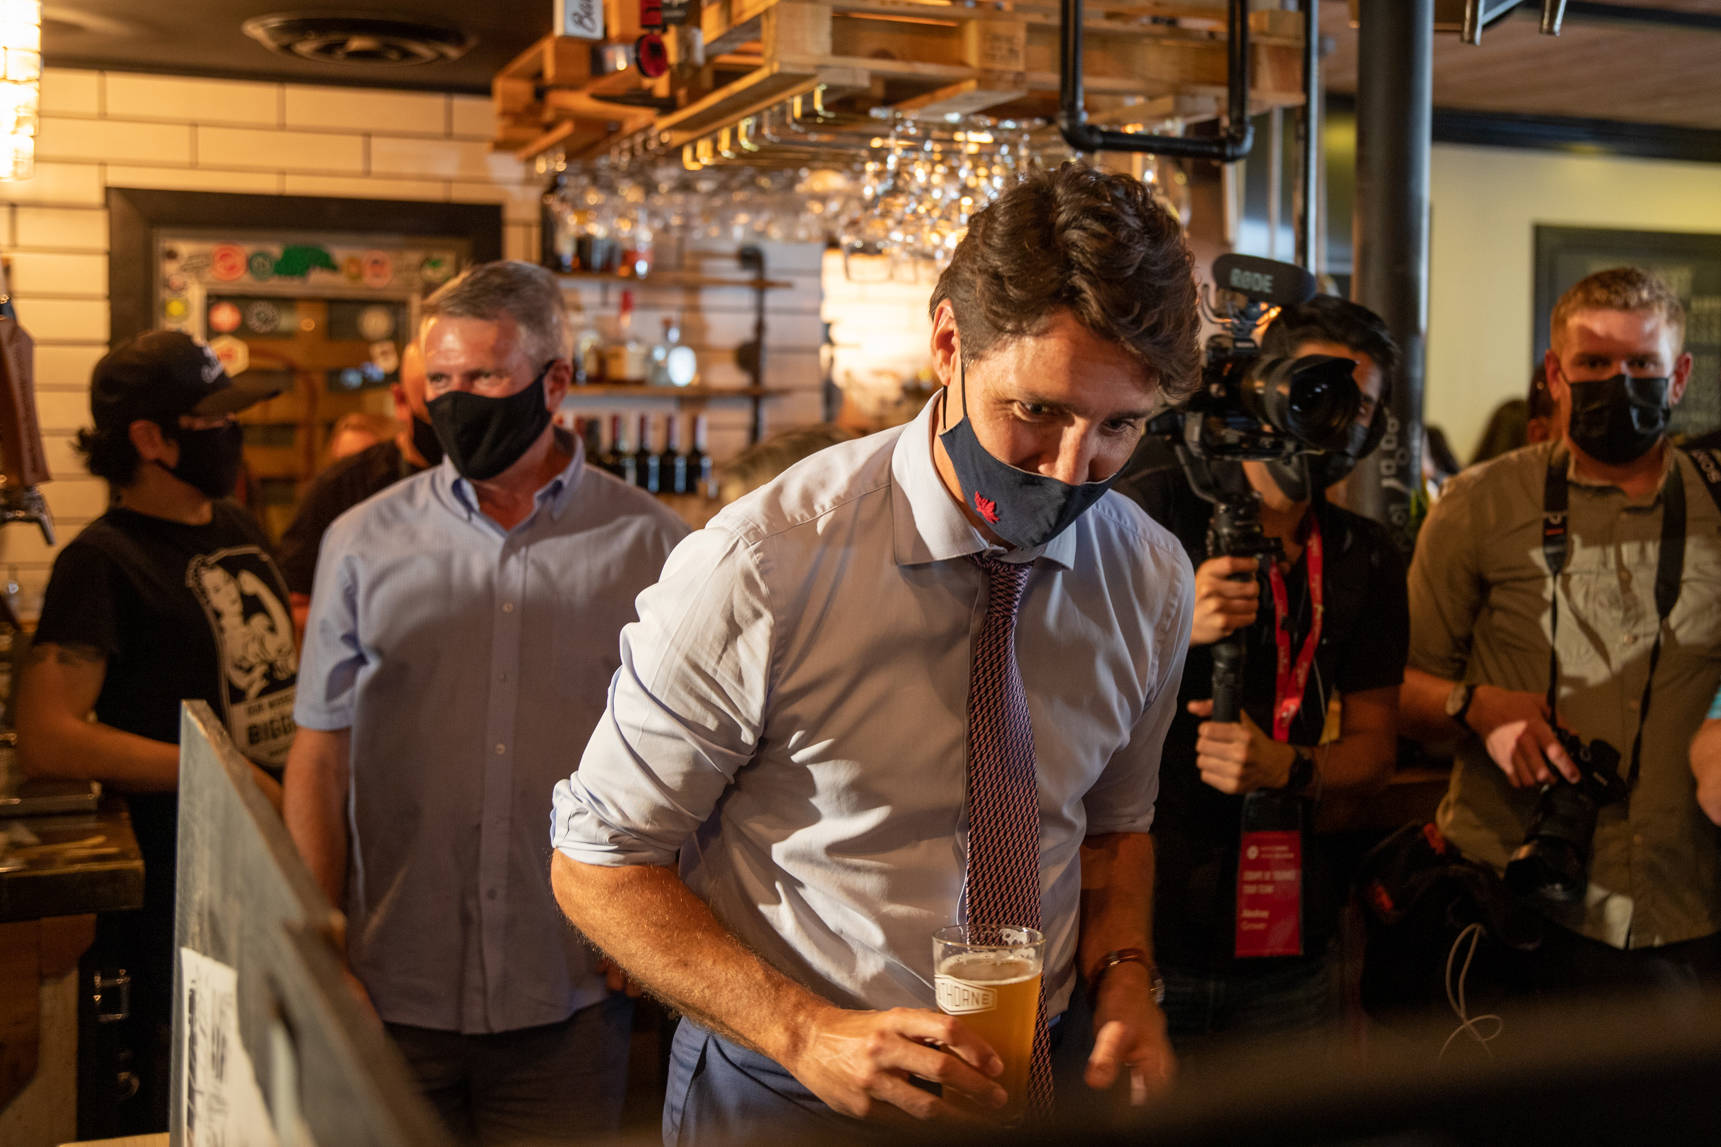 Justin Trudeau serves a pint to a patron at Hawthorne pub in Cloverdale Aug. 18 as John Aldag (back, left) kicked off his campaign to retake the riding of Cloverdale-Langley City after losing it in the 2019 federal election. (Photo: Jason Sveinson)